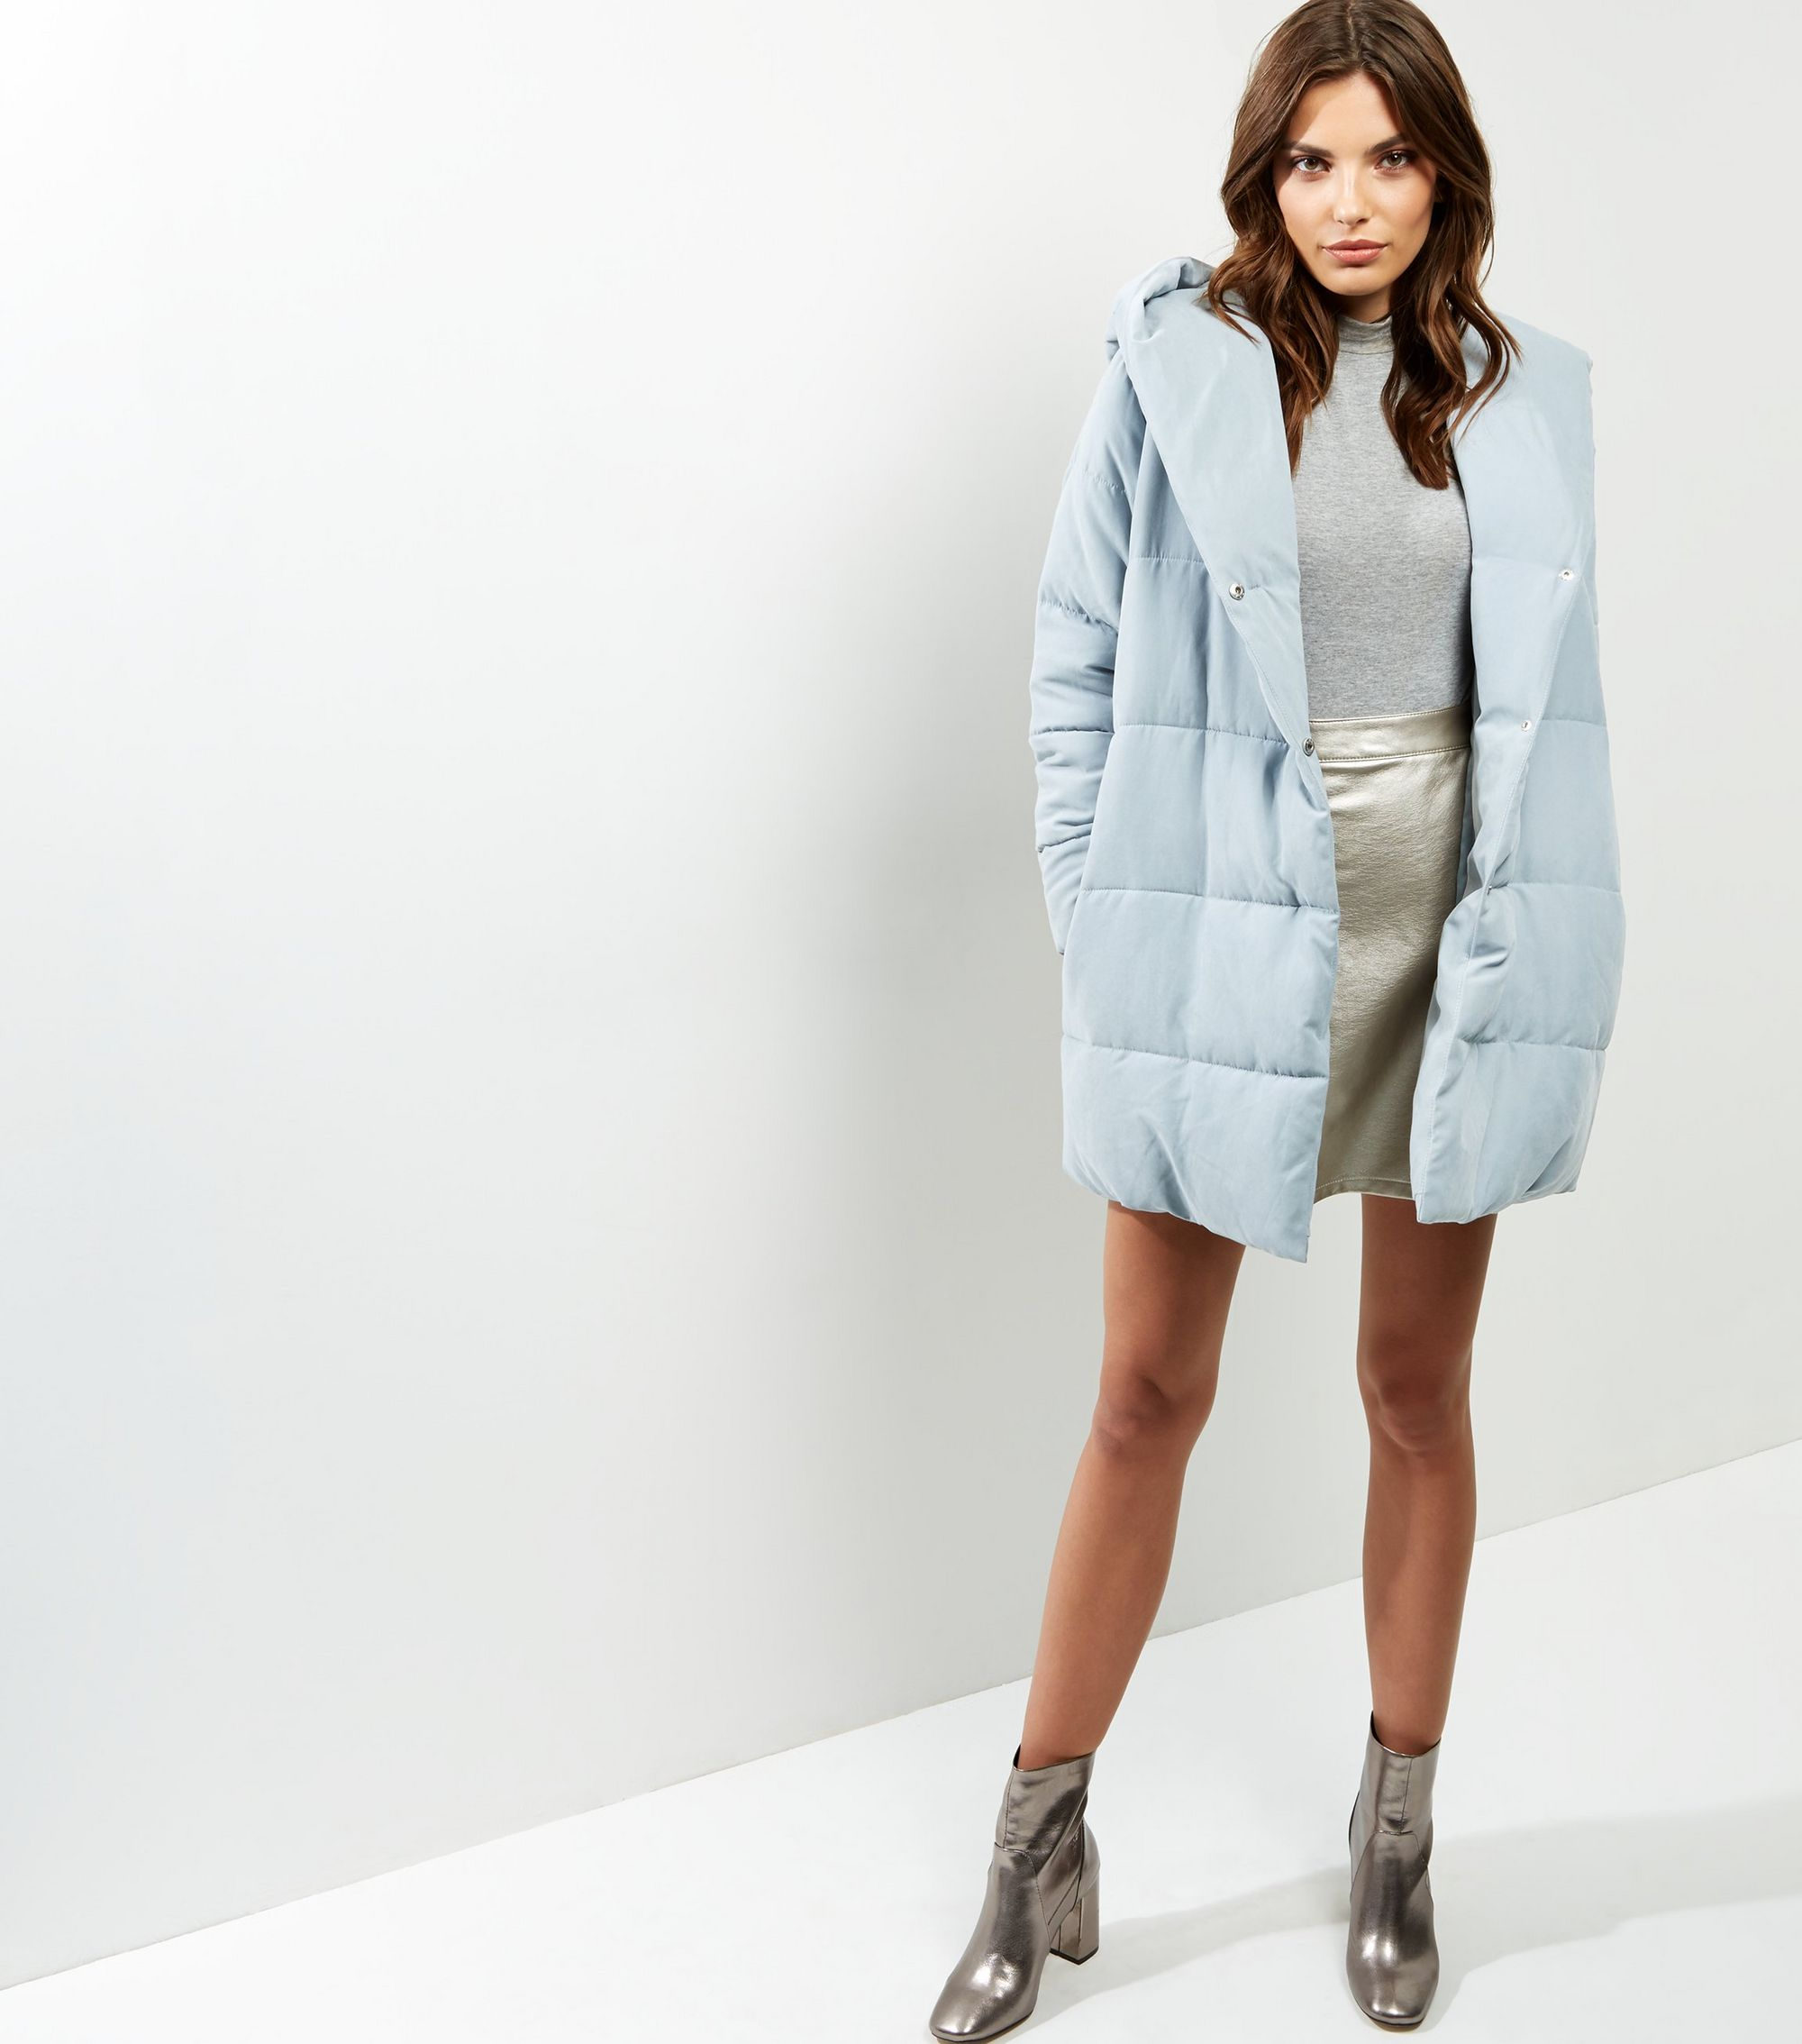 http://media.newlookassets.com/i/newlook/385361904/womens/jackets-and-coats/padded-and-puffer/grey-padded-hooded-puffer-jacket/?$new_pdp_szoom_image_2000$